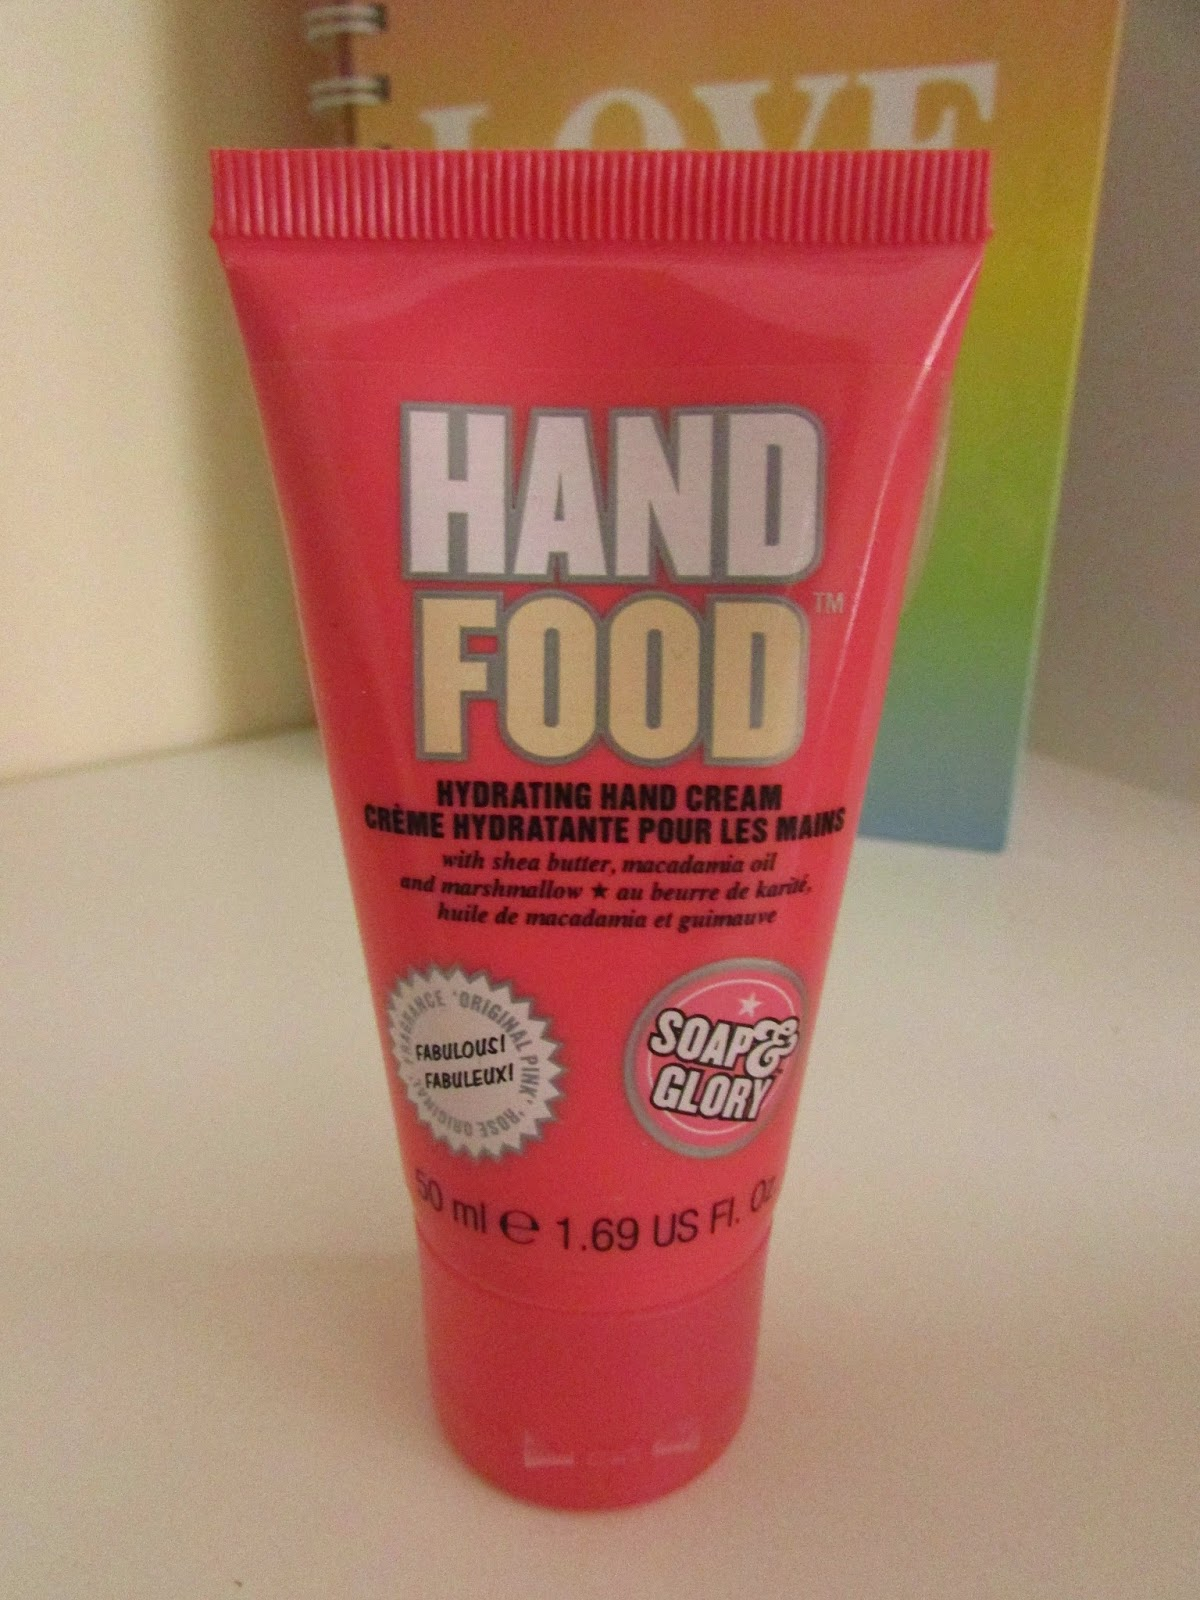 My Top 5 Soap & Glory Products